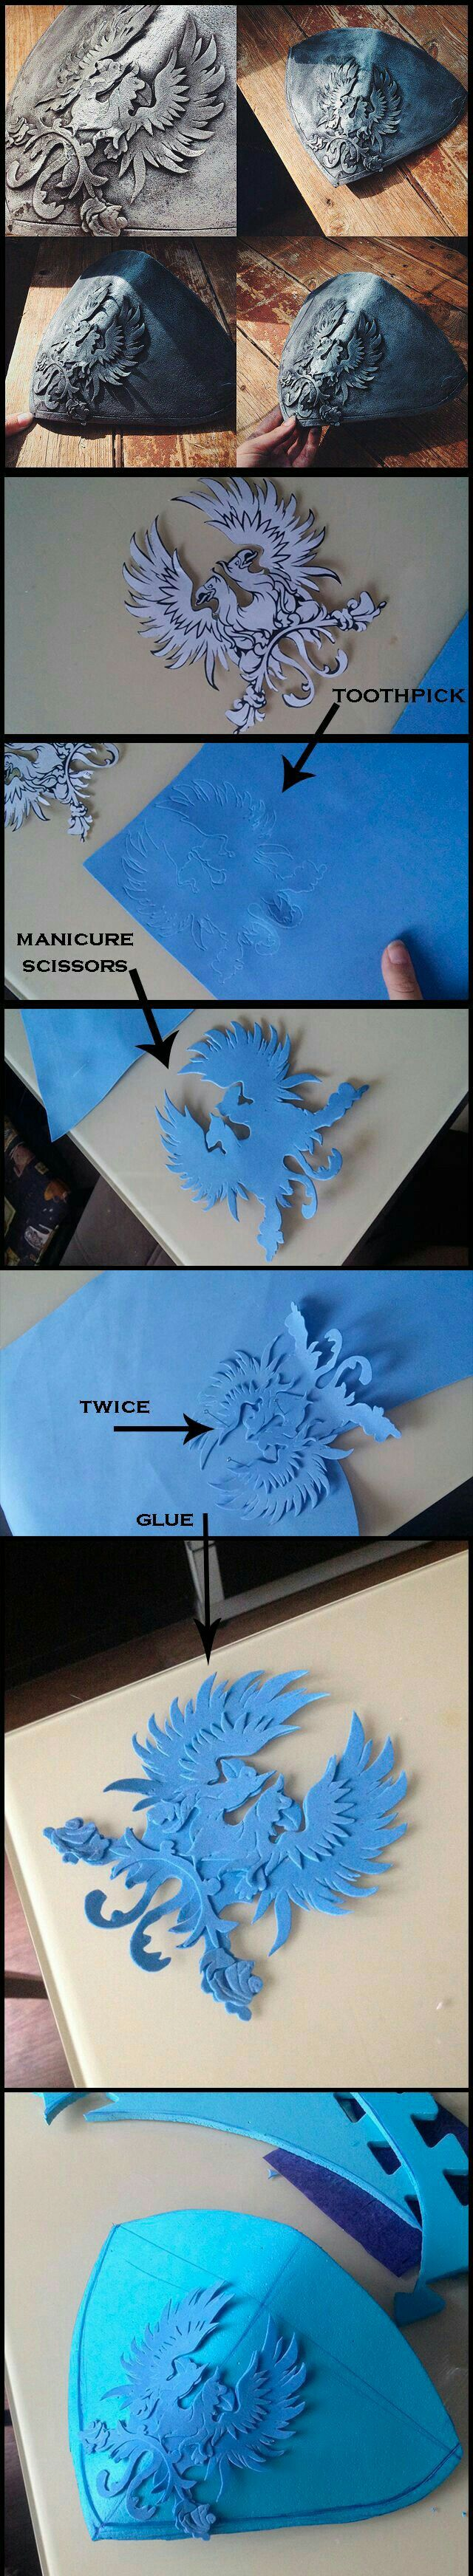 Photo of How to make an emblem on metal using foam cosplay costume armour detail tutorial